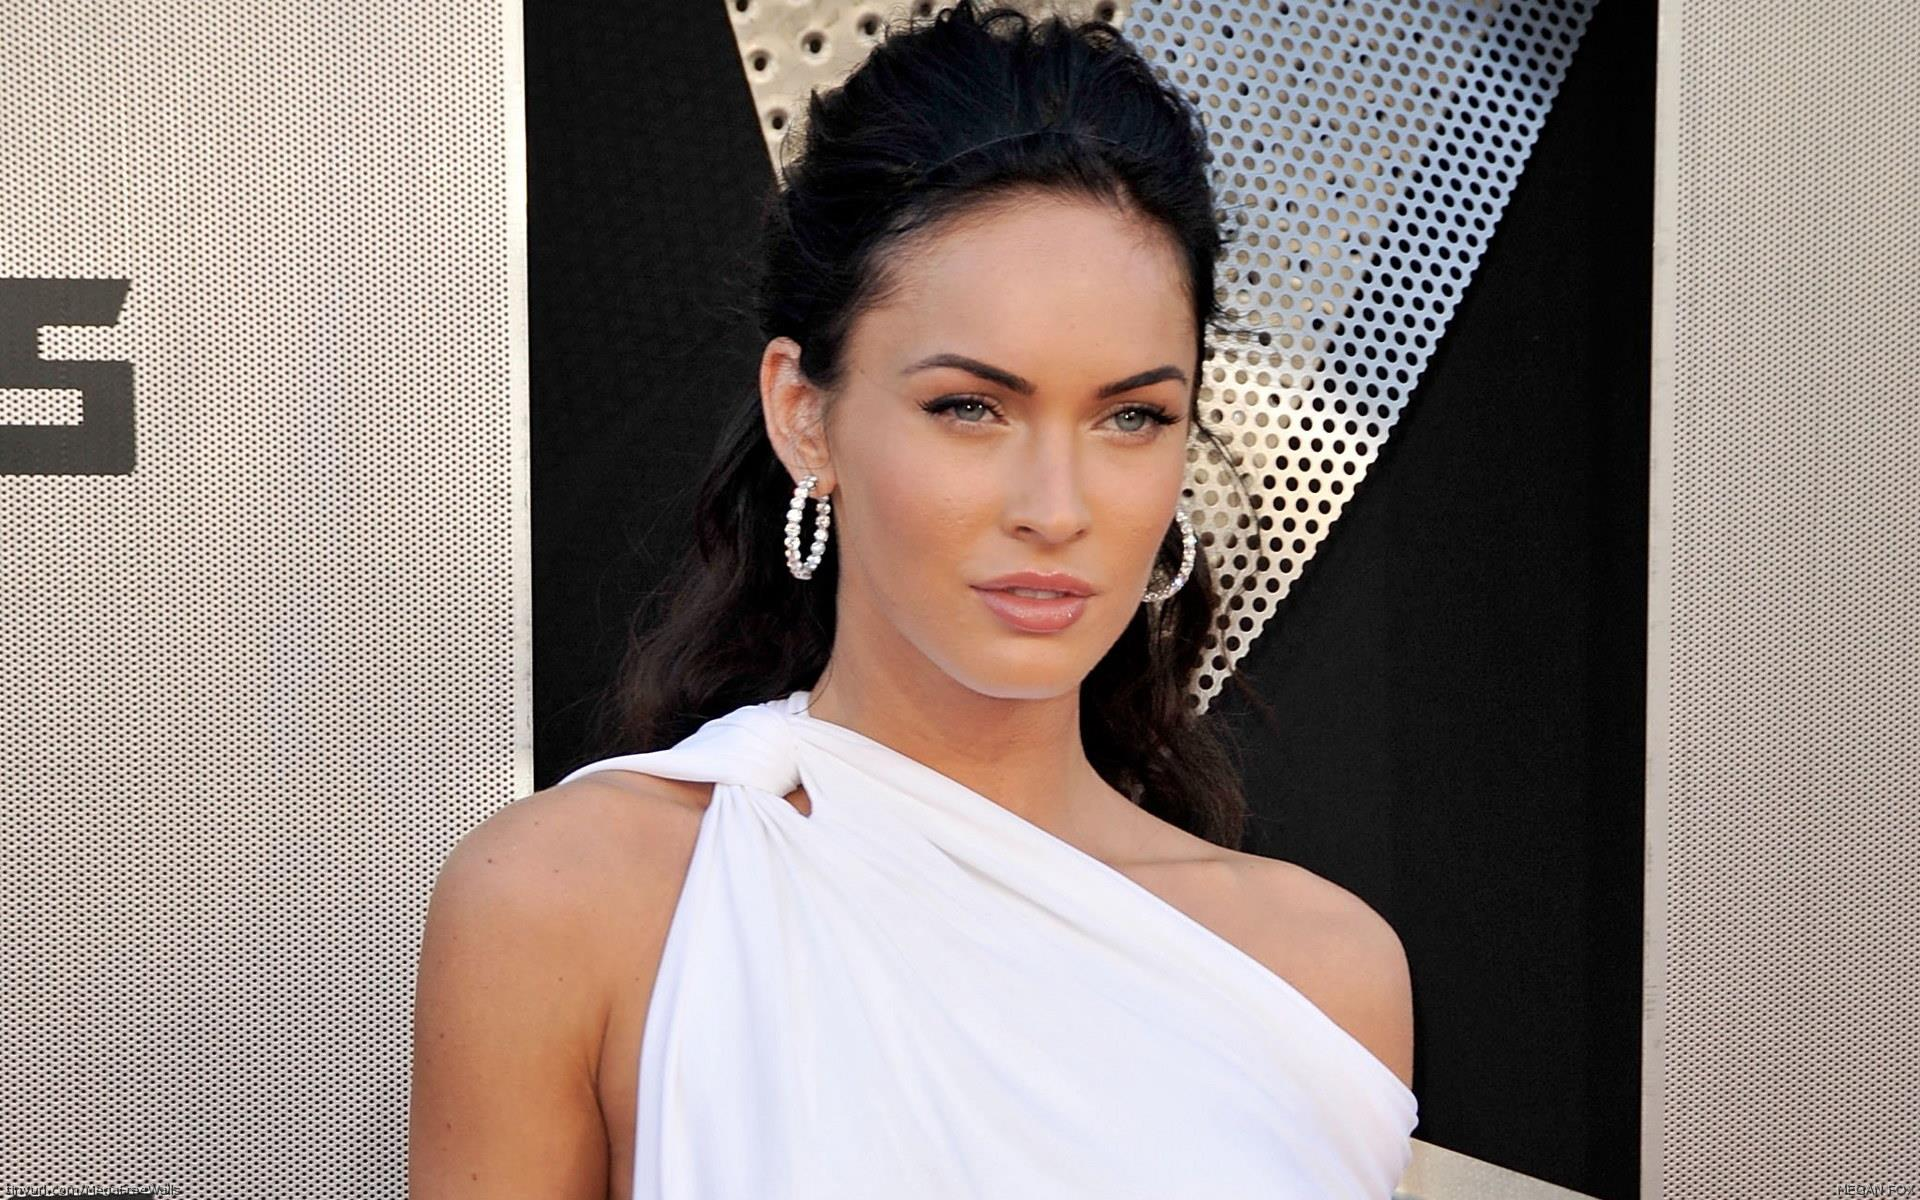 Cute Face Girl Wallpaper Megan Fox Look Sexy In White Dress